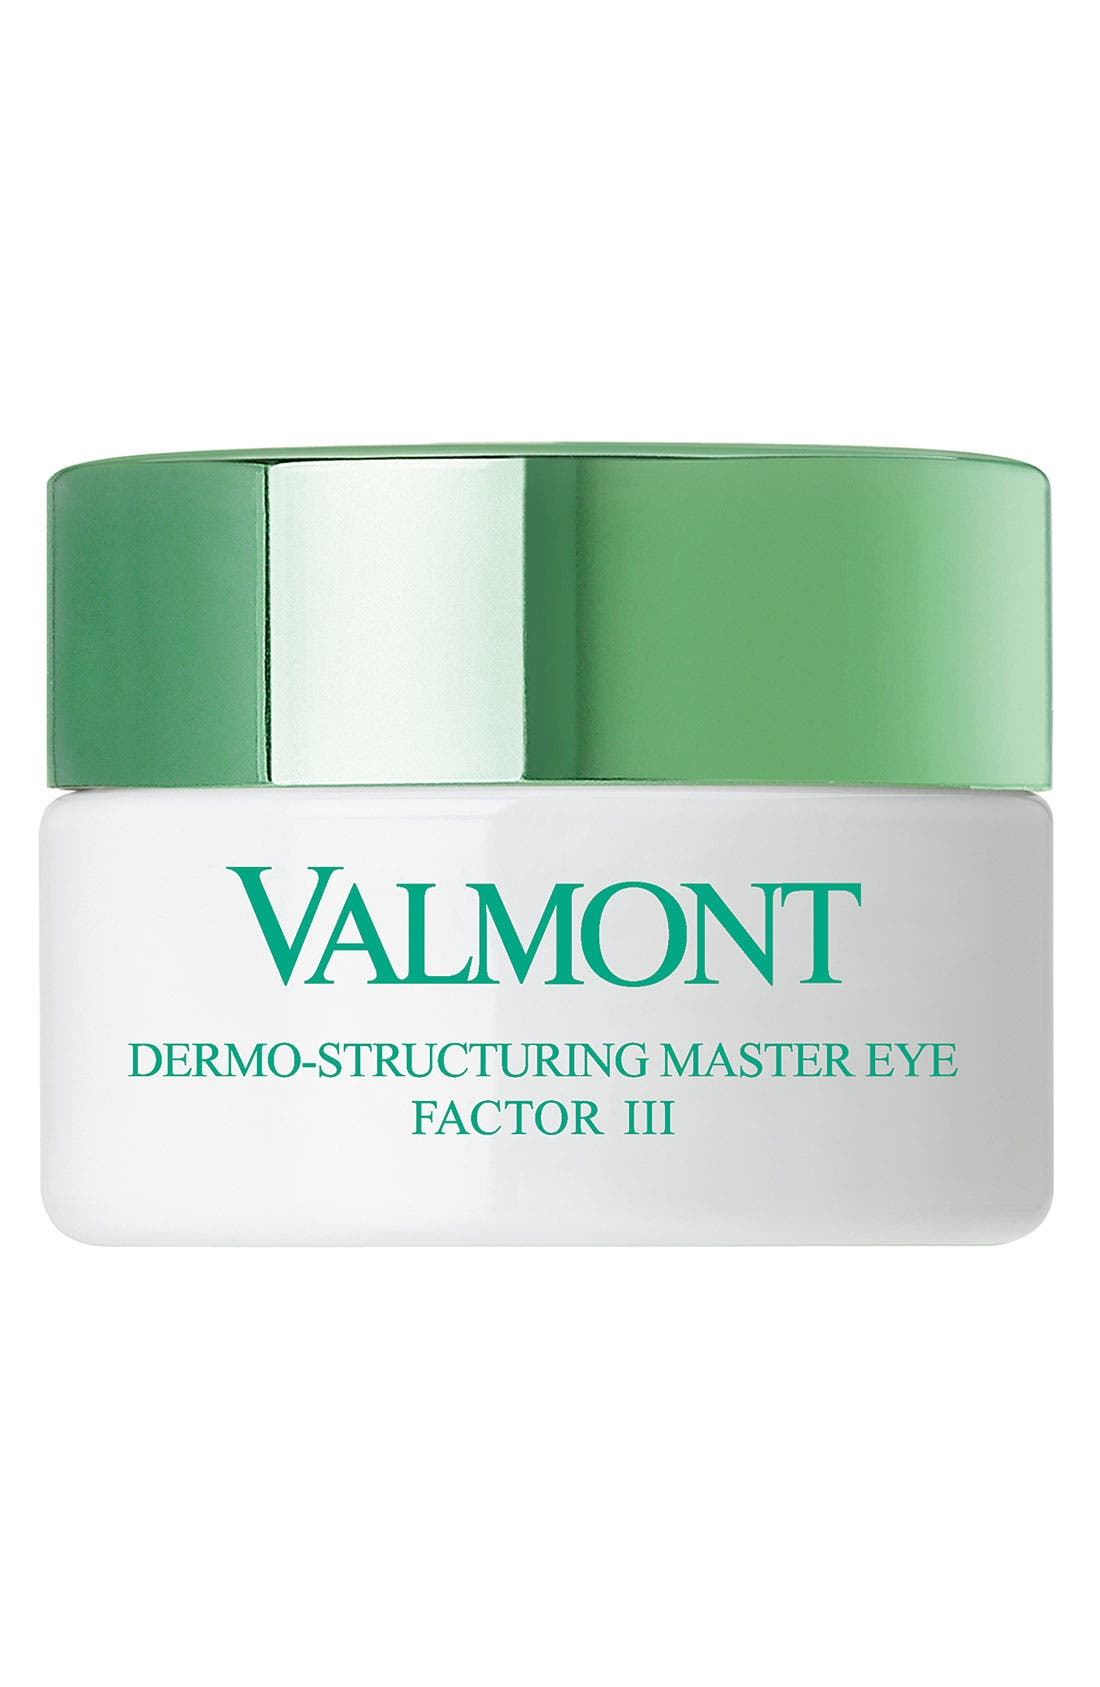 'Dermo-Structuring Master Eye Factor III' Cream,                             Main thumbnail 1, color,                             000